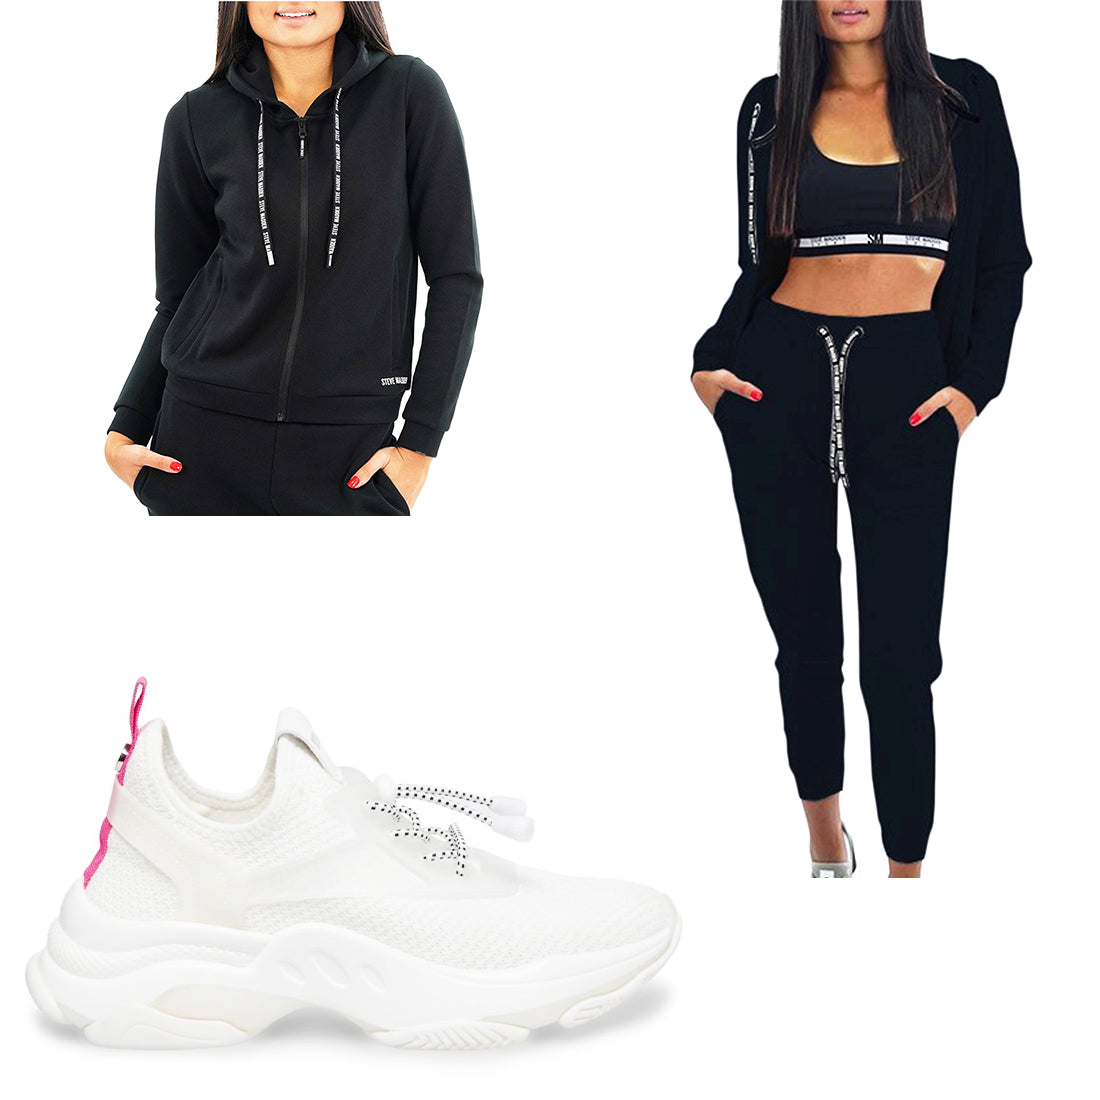 ACTIVE JOGGERS BLACK + ZIP-UP ACTIVE SWEATSHIRT BLACK + MYLES WHITE